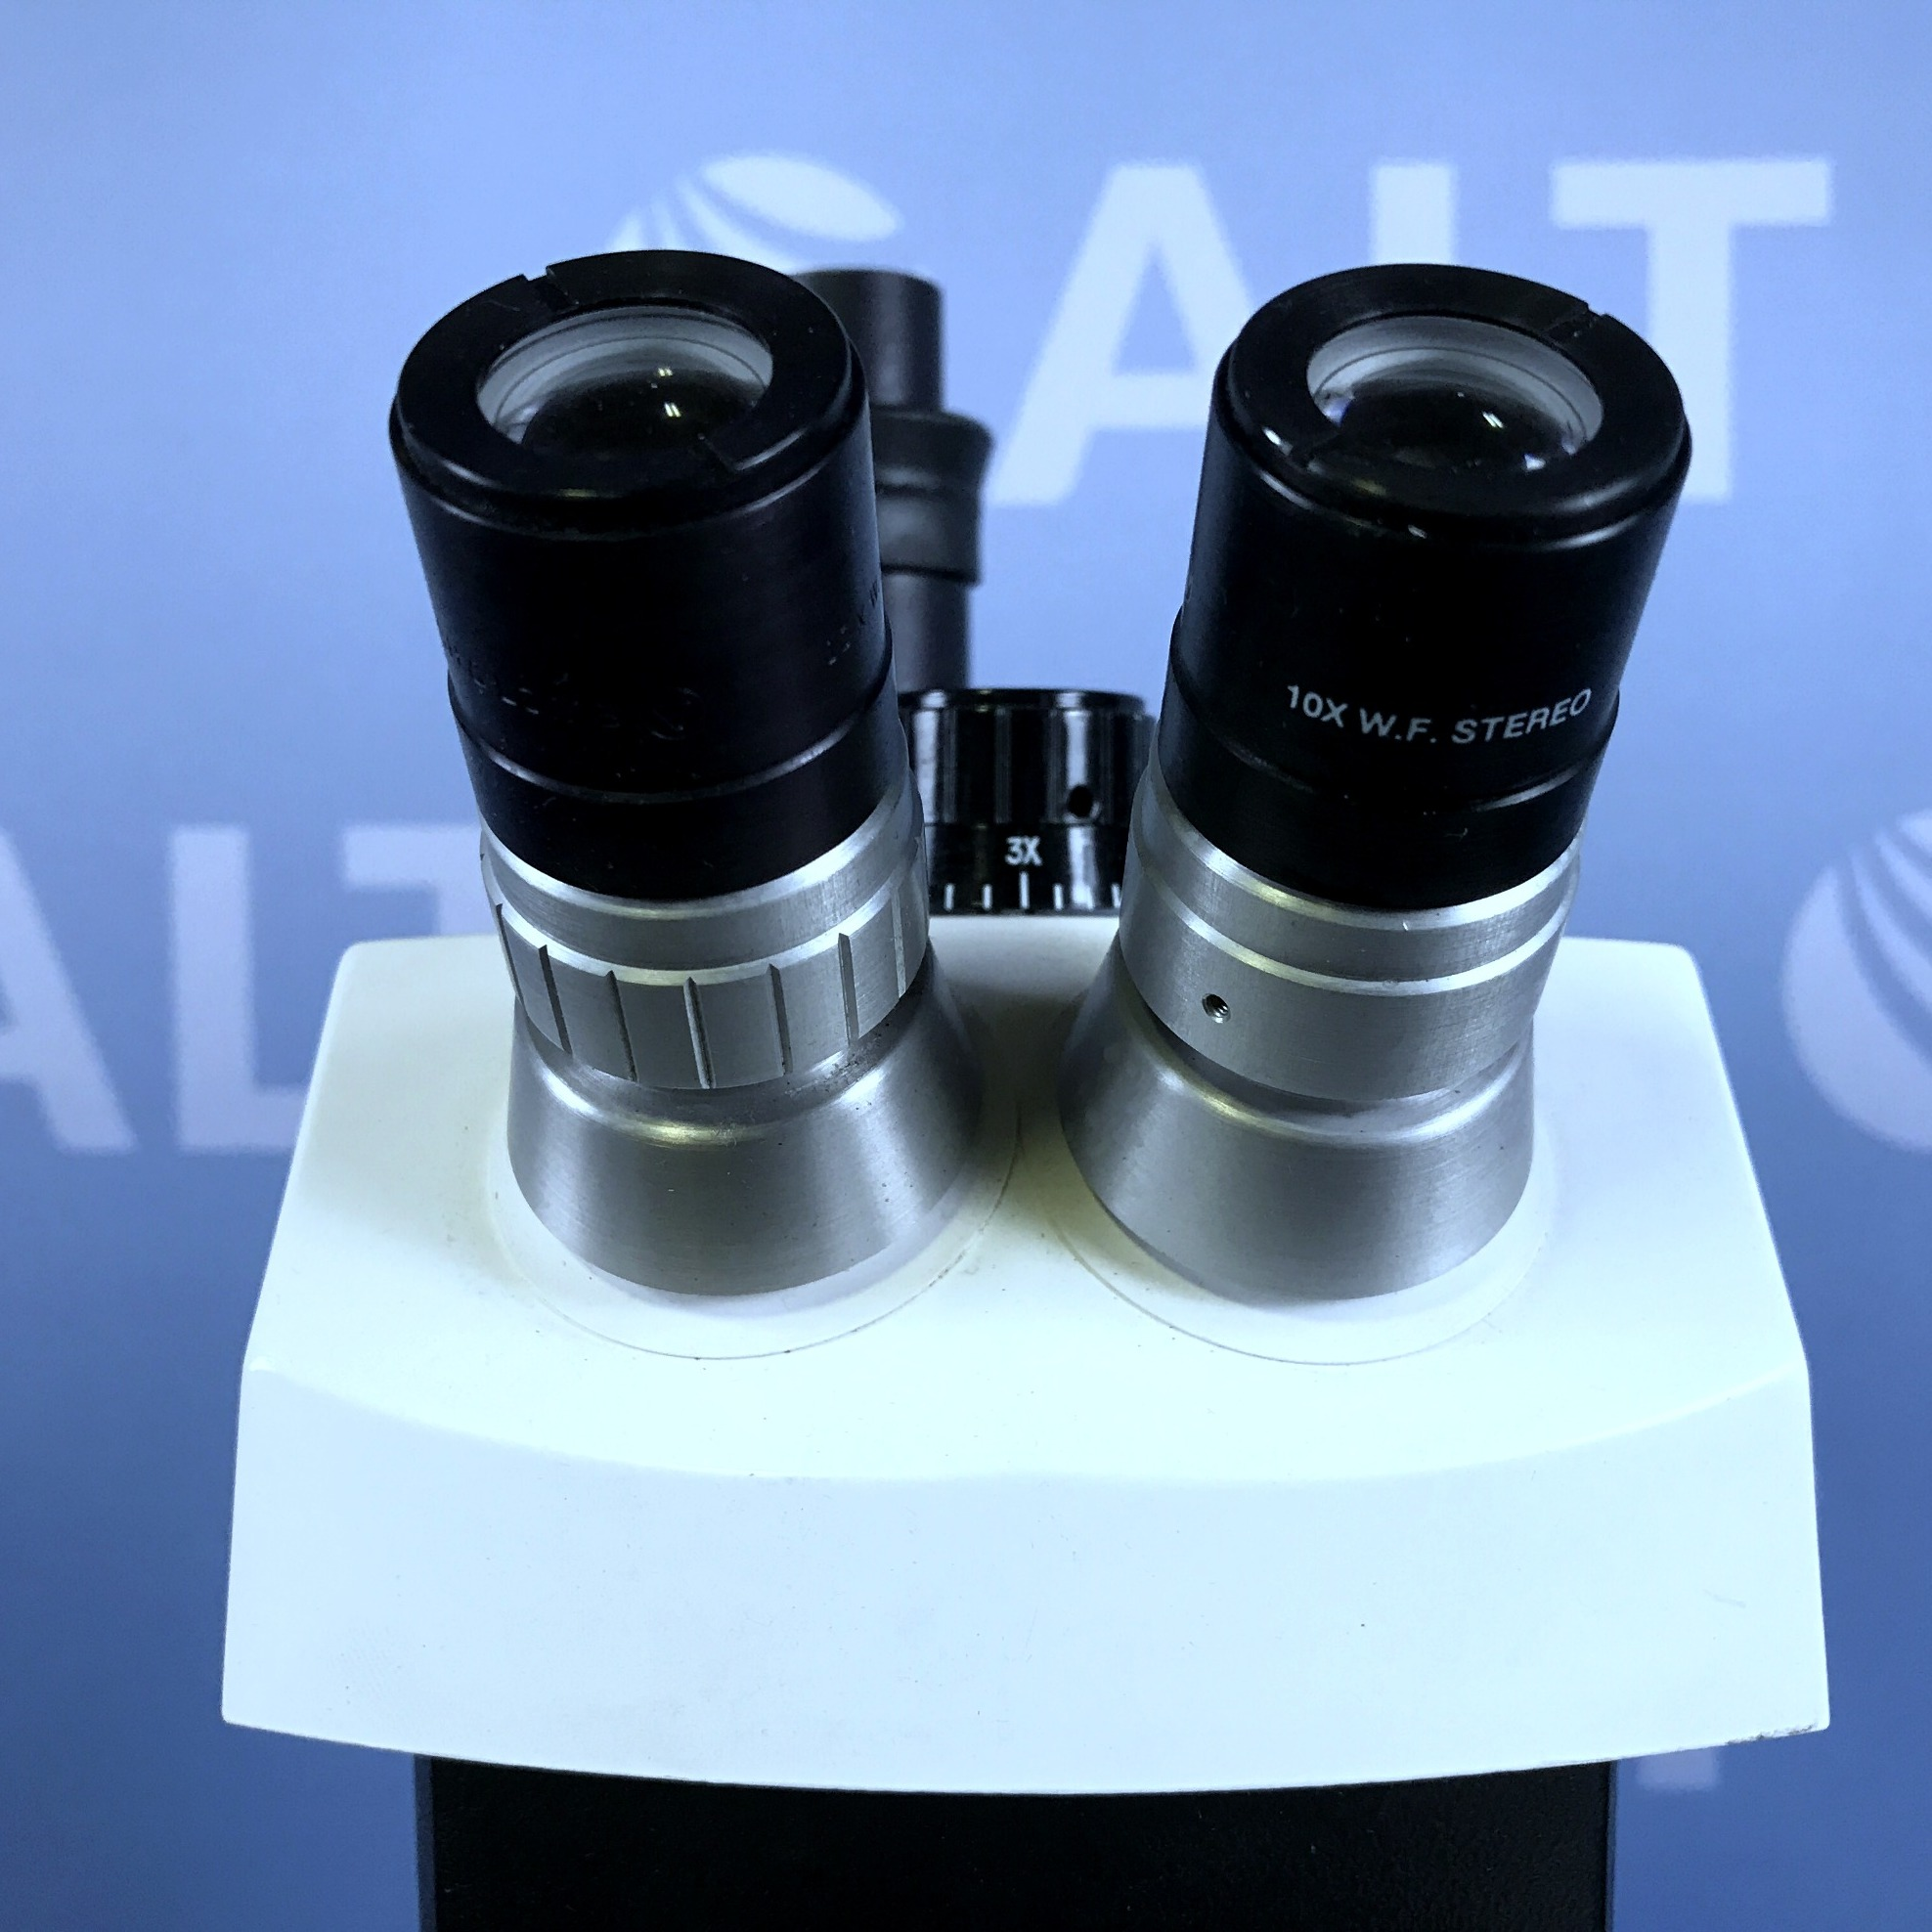 Bausch & Lomb StereoZoom 4 0.7x-3x Microscope  Image